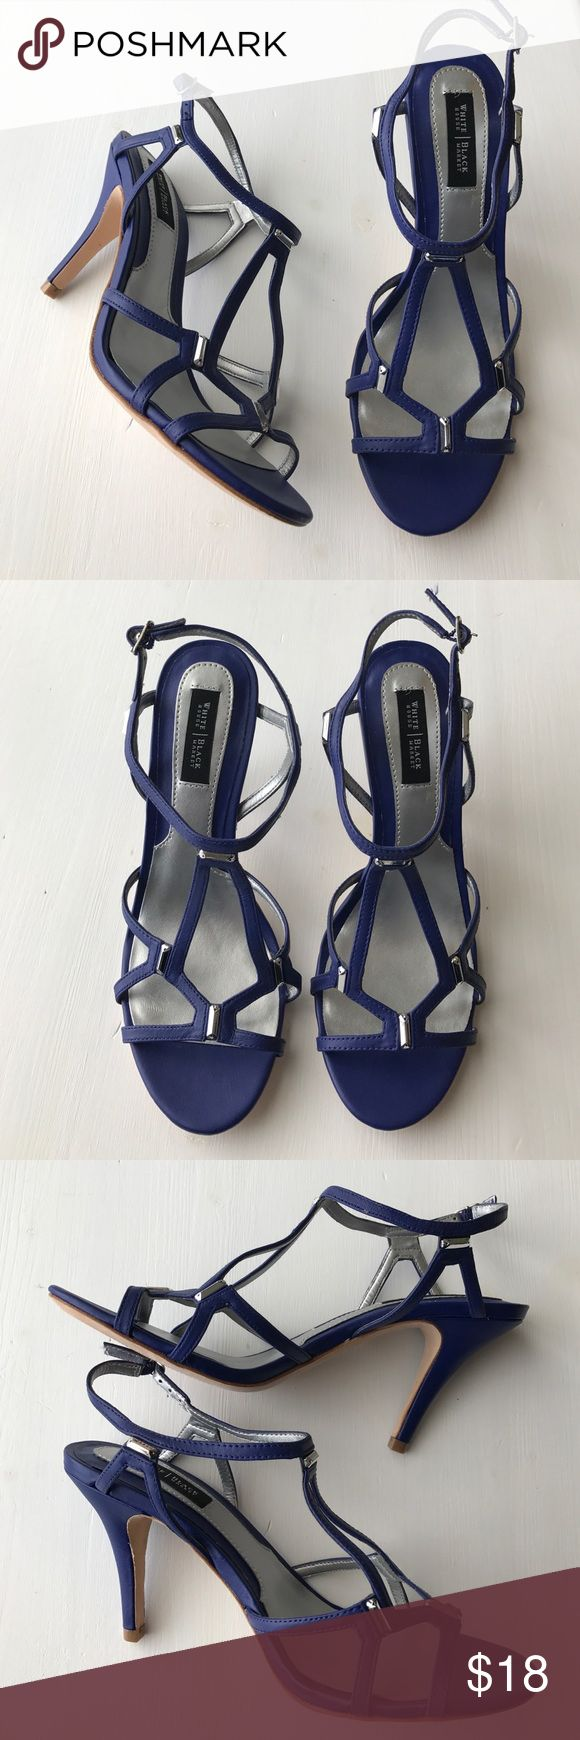 Blue strappy heels Beautiful blue sandals with silver accent! These shoes are brand new, maybe worn once. Elastic and adjustable buckle at the ankle. Leather. White House Black Market Shoes Heels